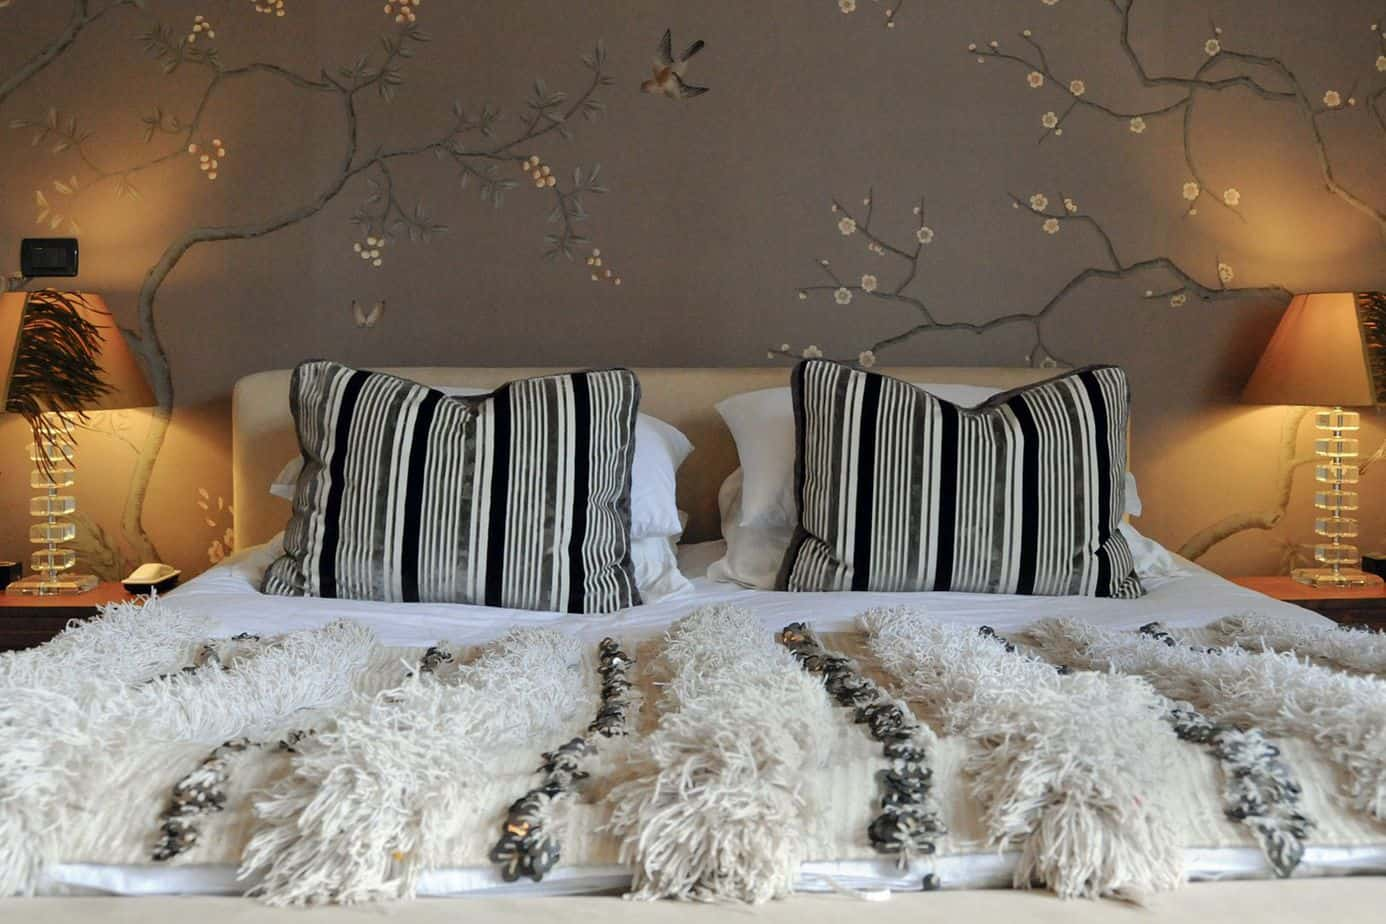 10 Recommended Wallpaper Designs For Bedrooms 69 on Small Home Decoration Ideas for Wallpaper Designs For Bedrooms